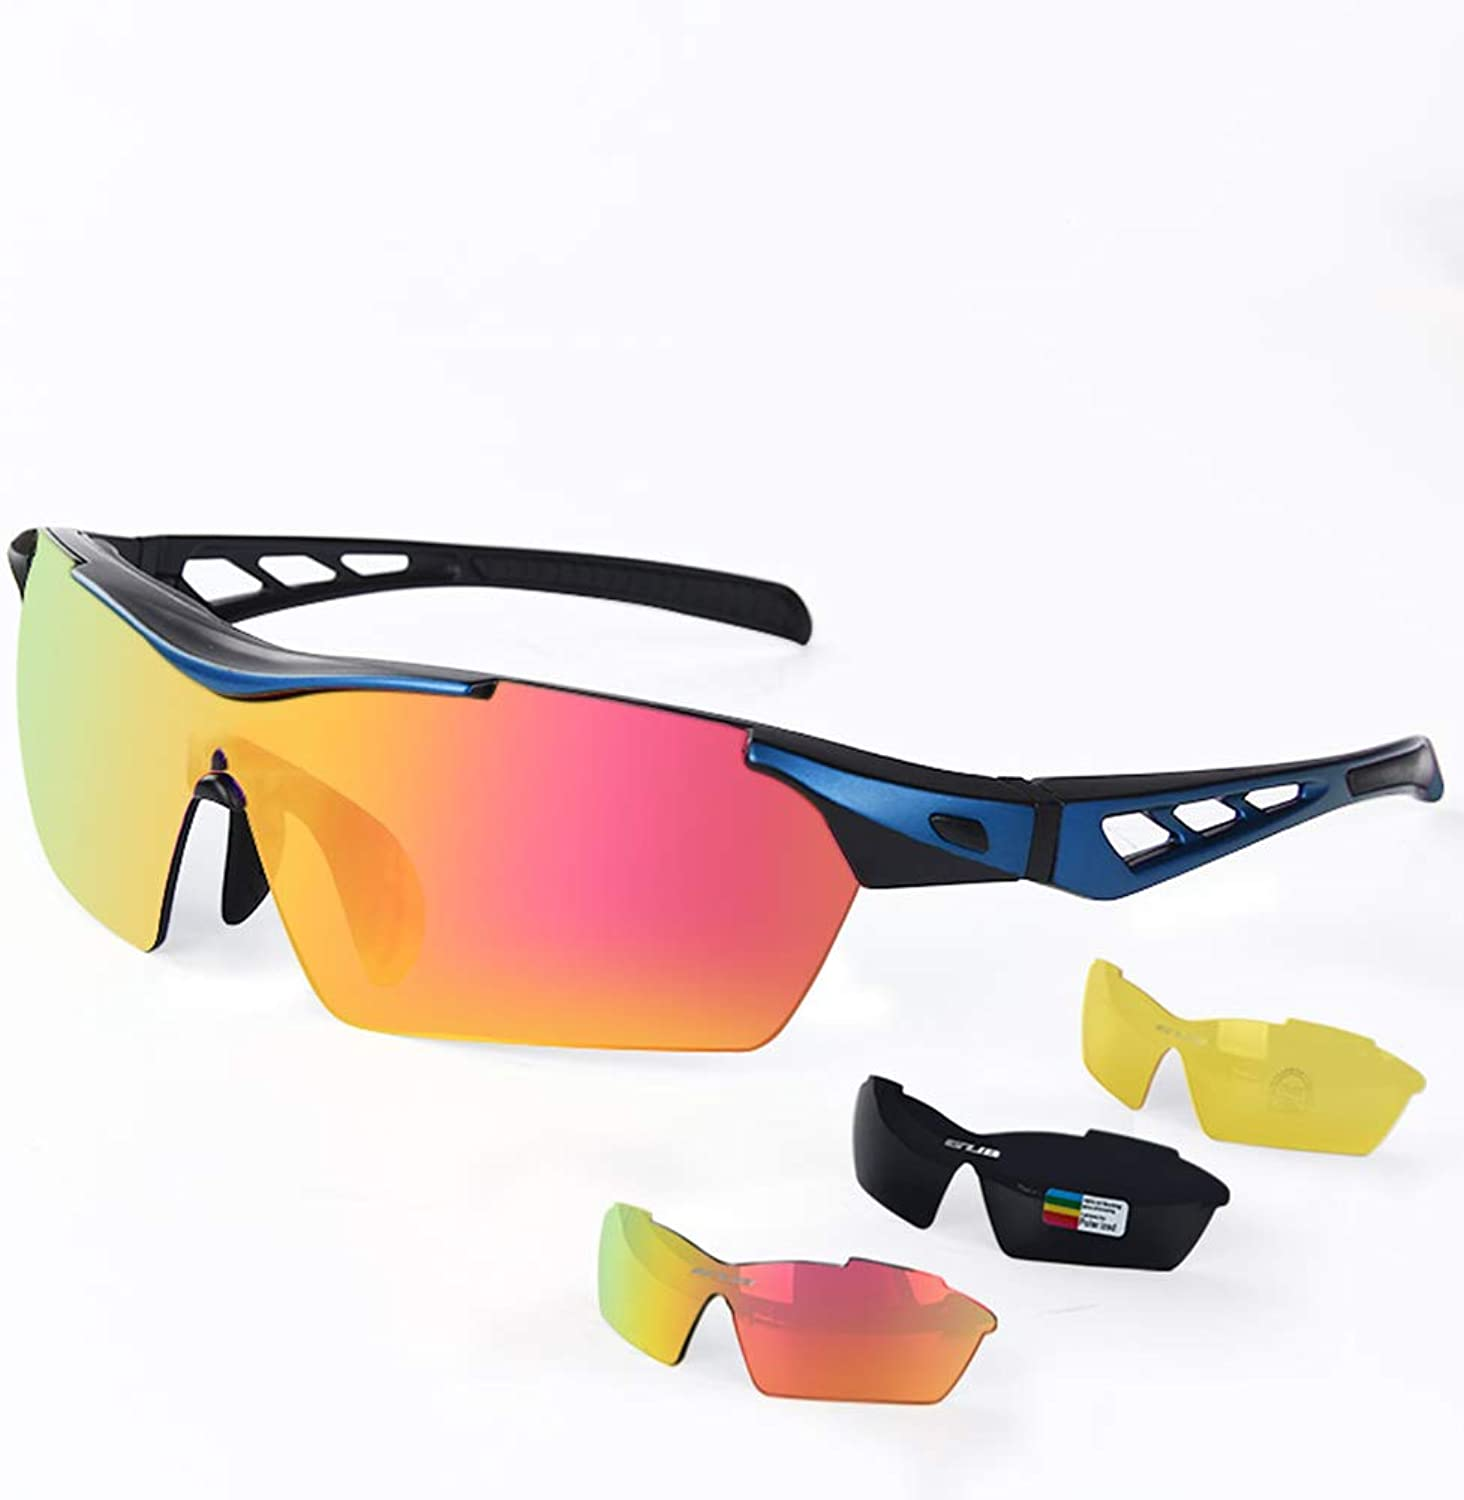 Polarized Sports Sunglasses Windproof Uv Predection Men's Outdoor Sports Glasses Hd Goggles Uv400 Predection Bicycle Fishing